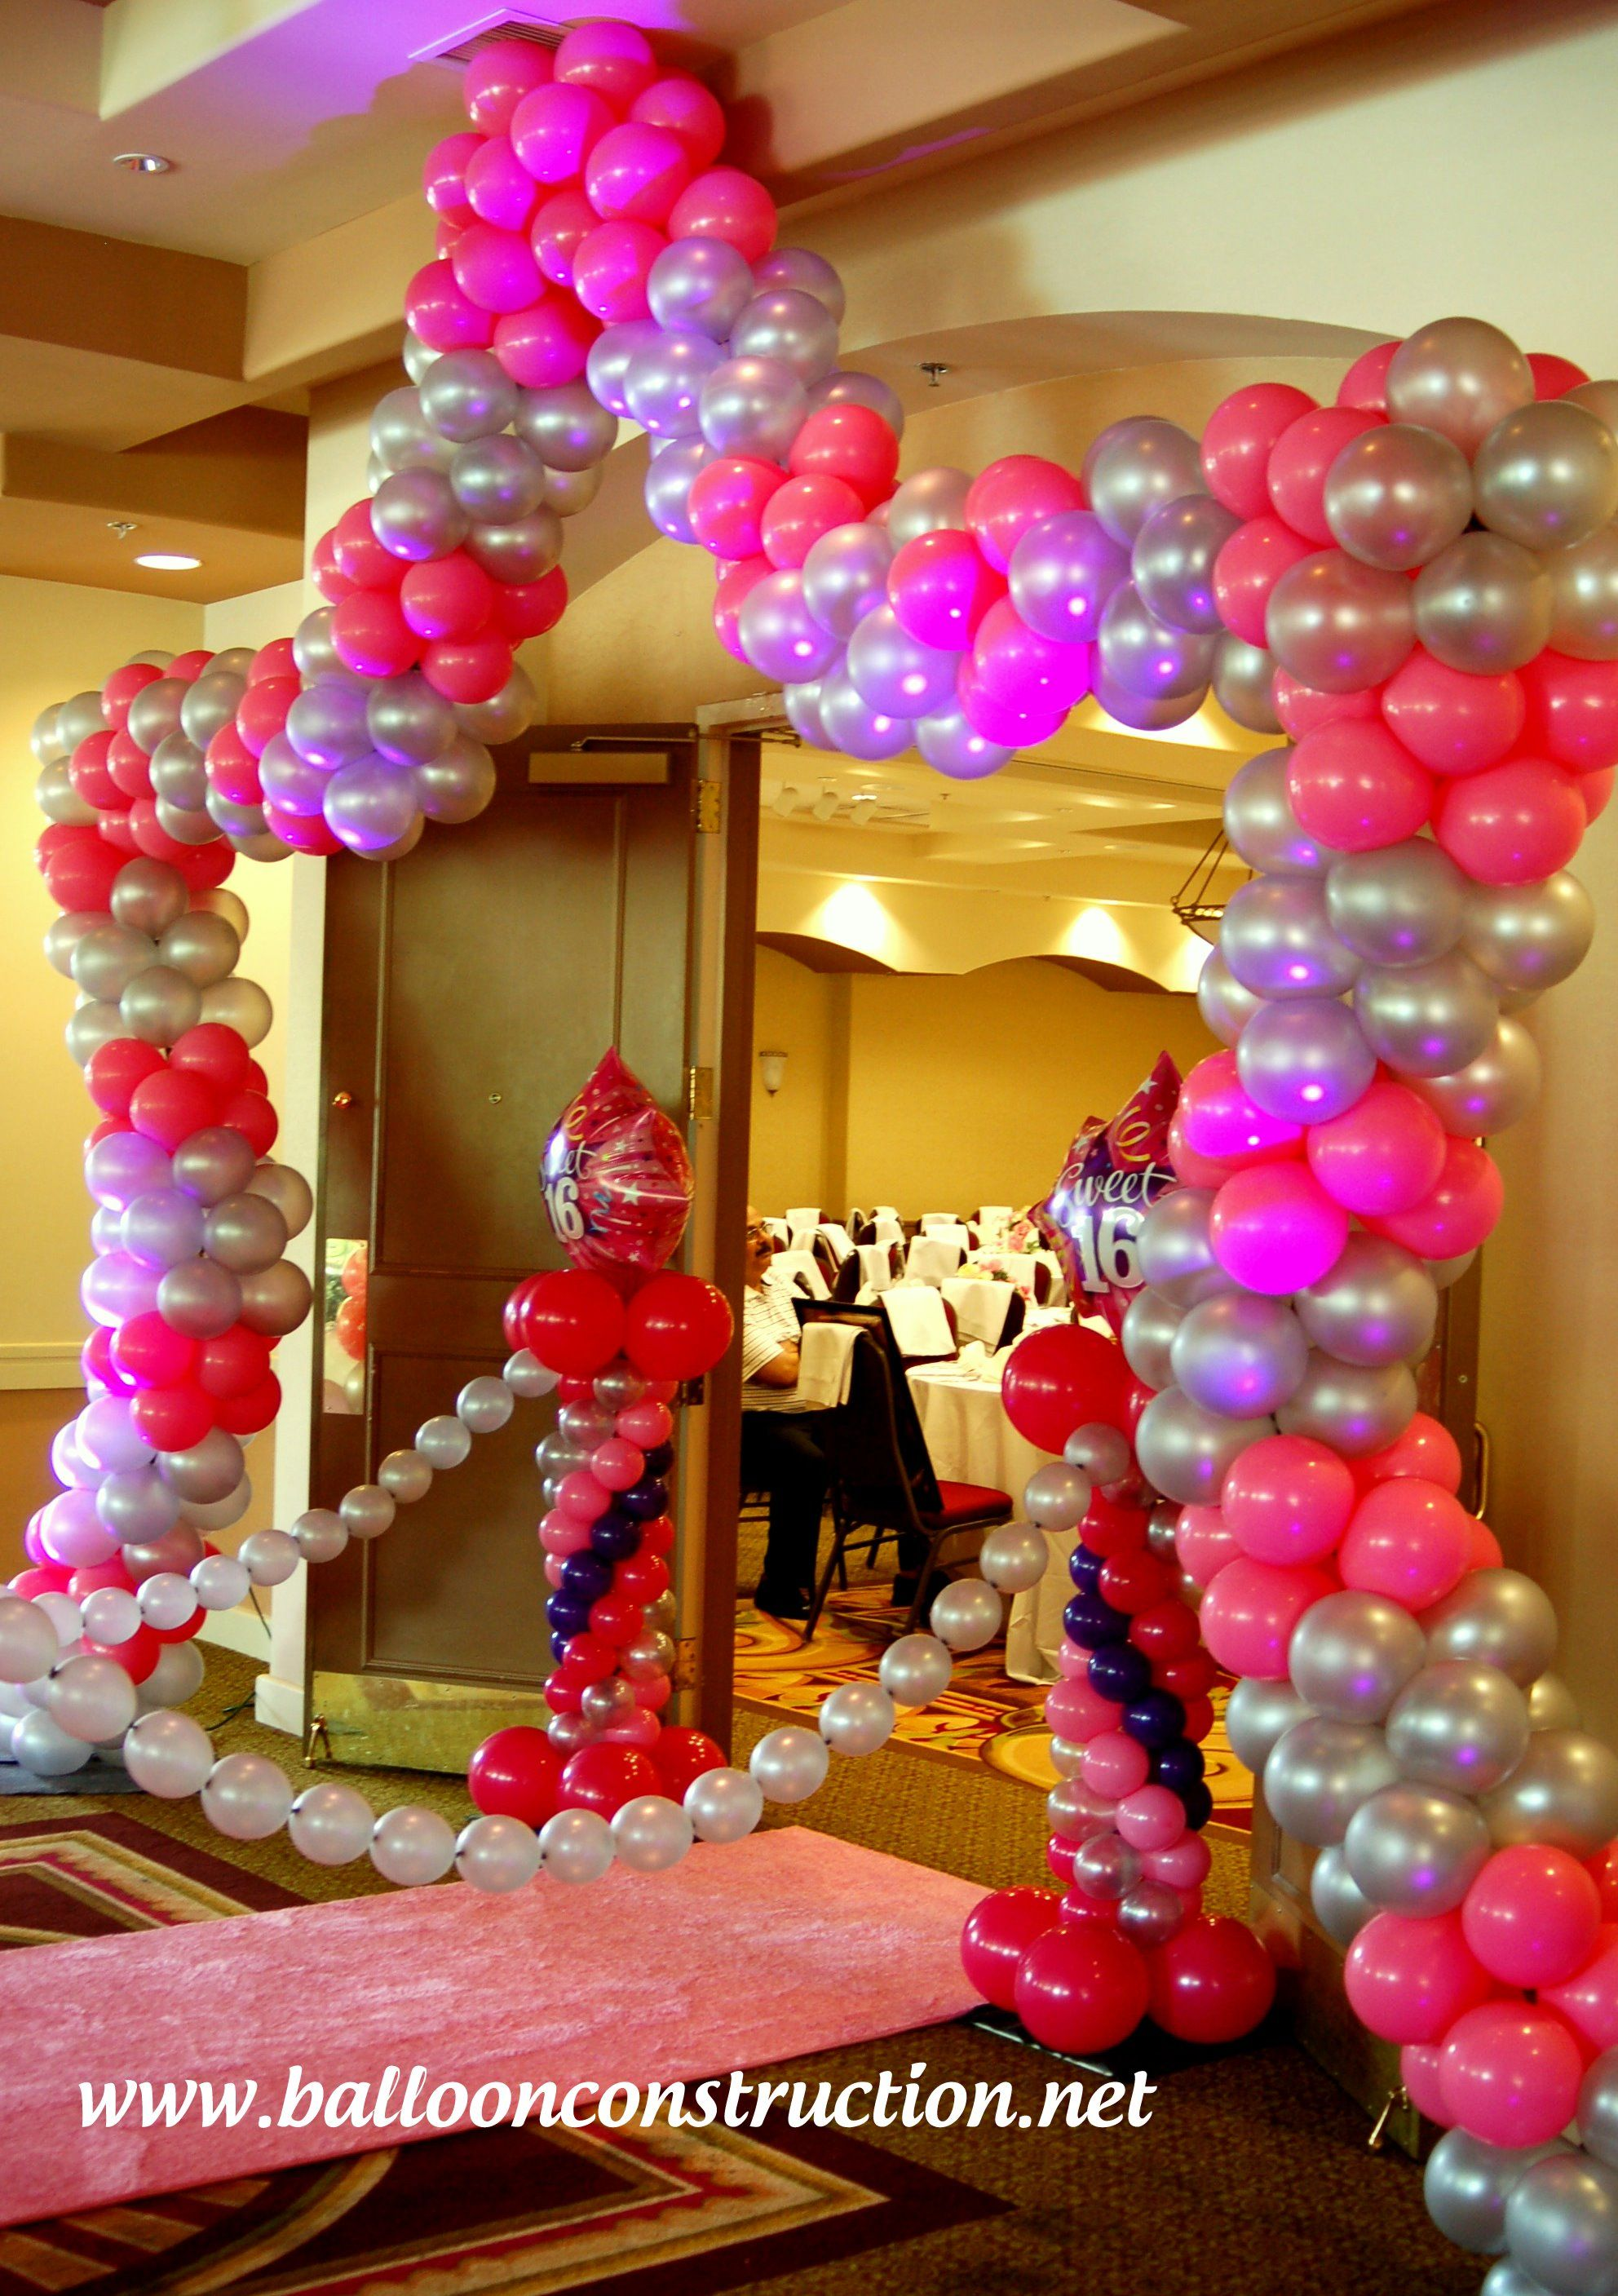 Decorative Stars For Parties Oscar Party Walk The Red Carpet Balloons Parties Showers